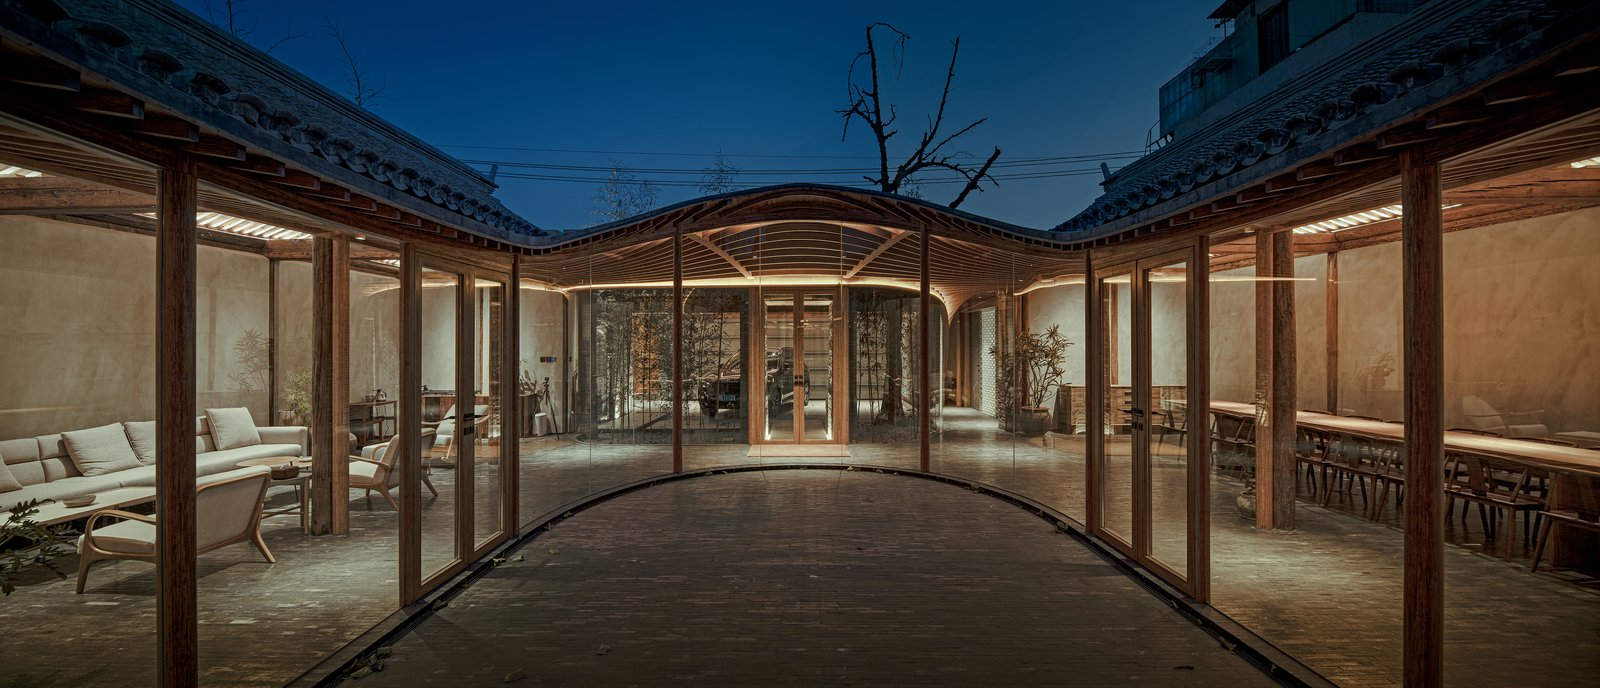 Qishe Courtyard by ARCHSTUDIO